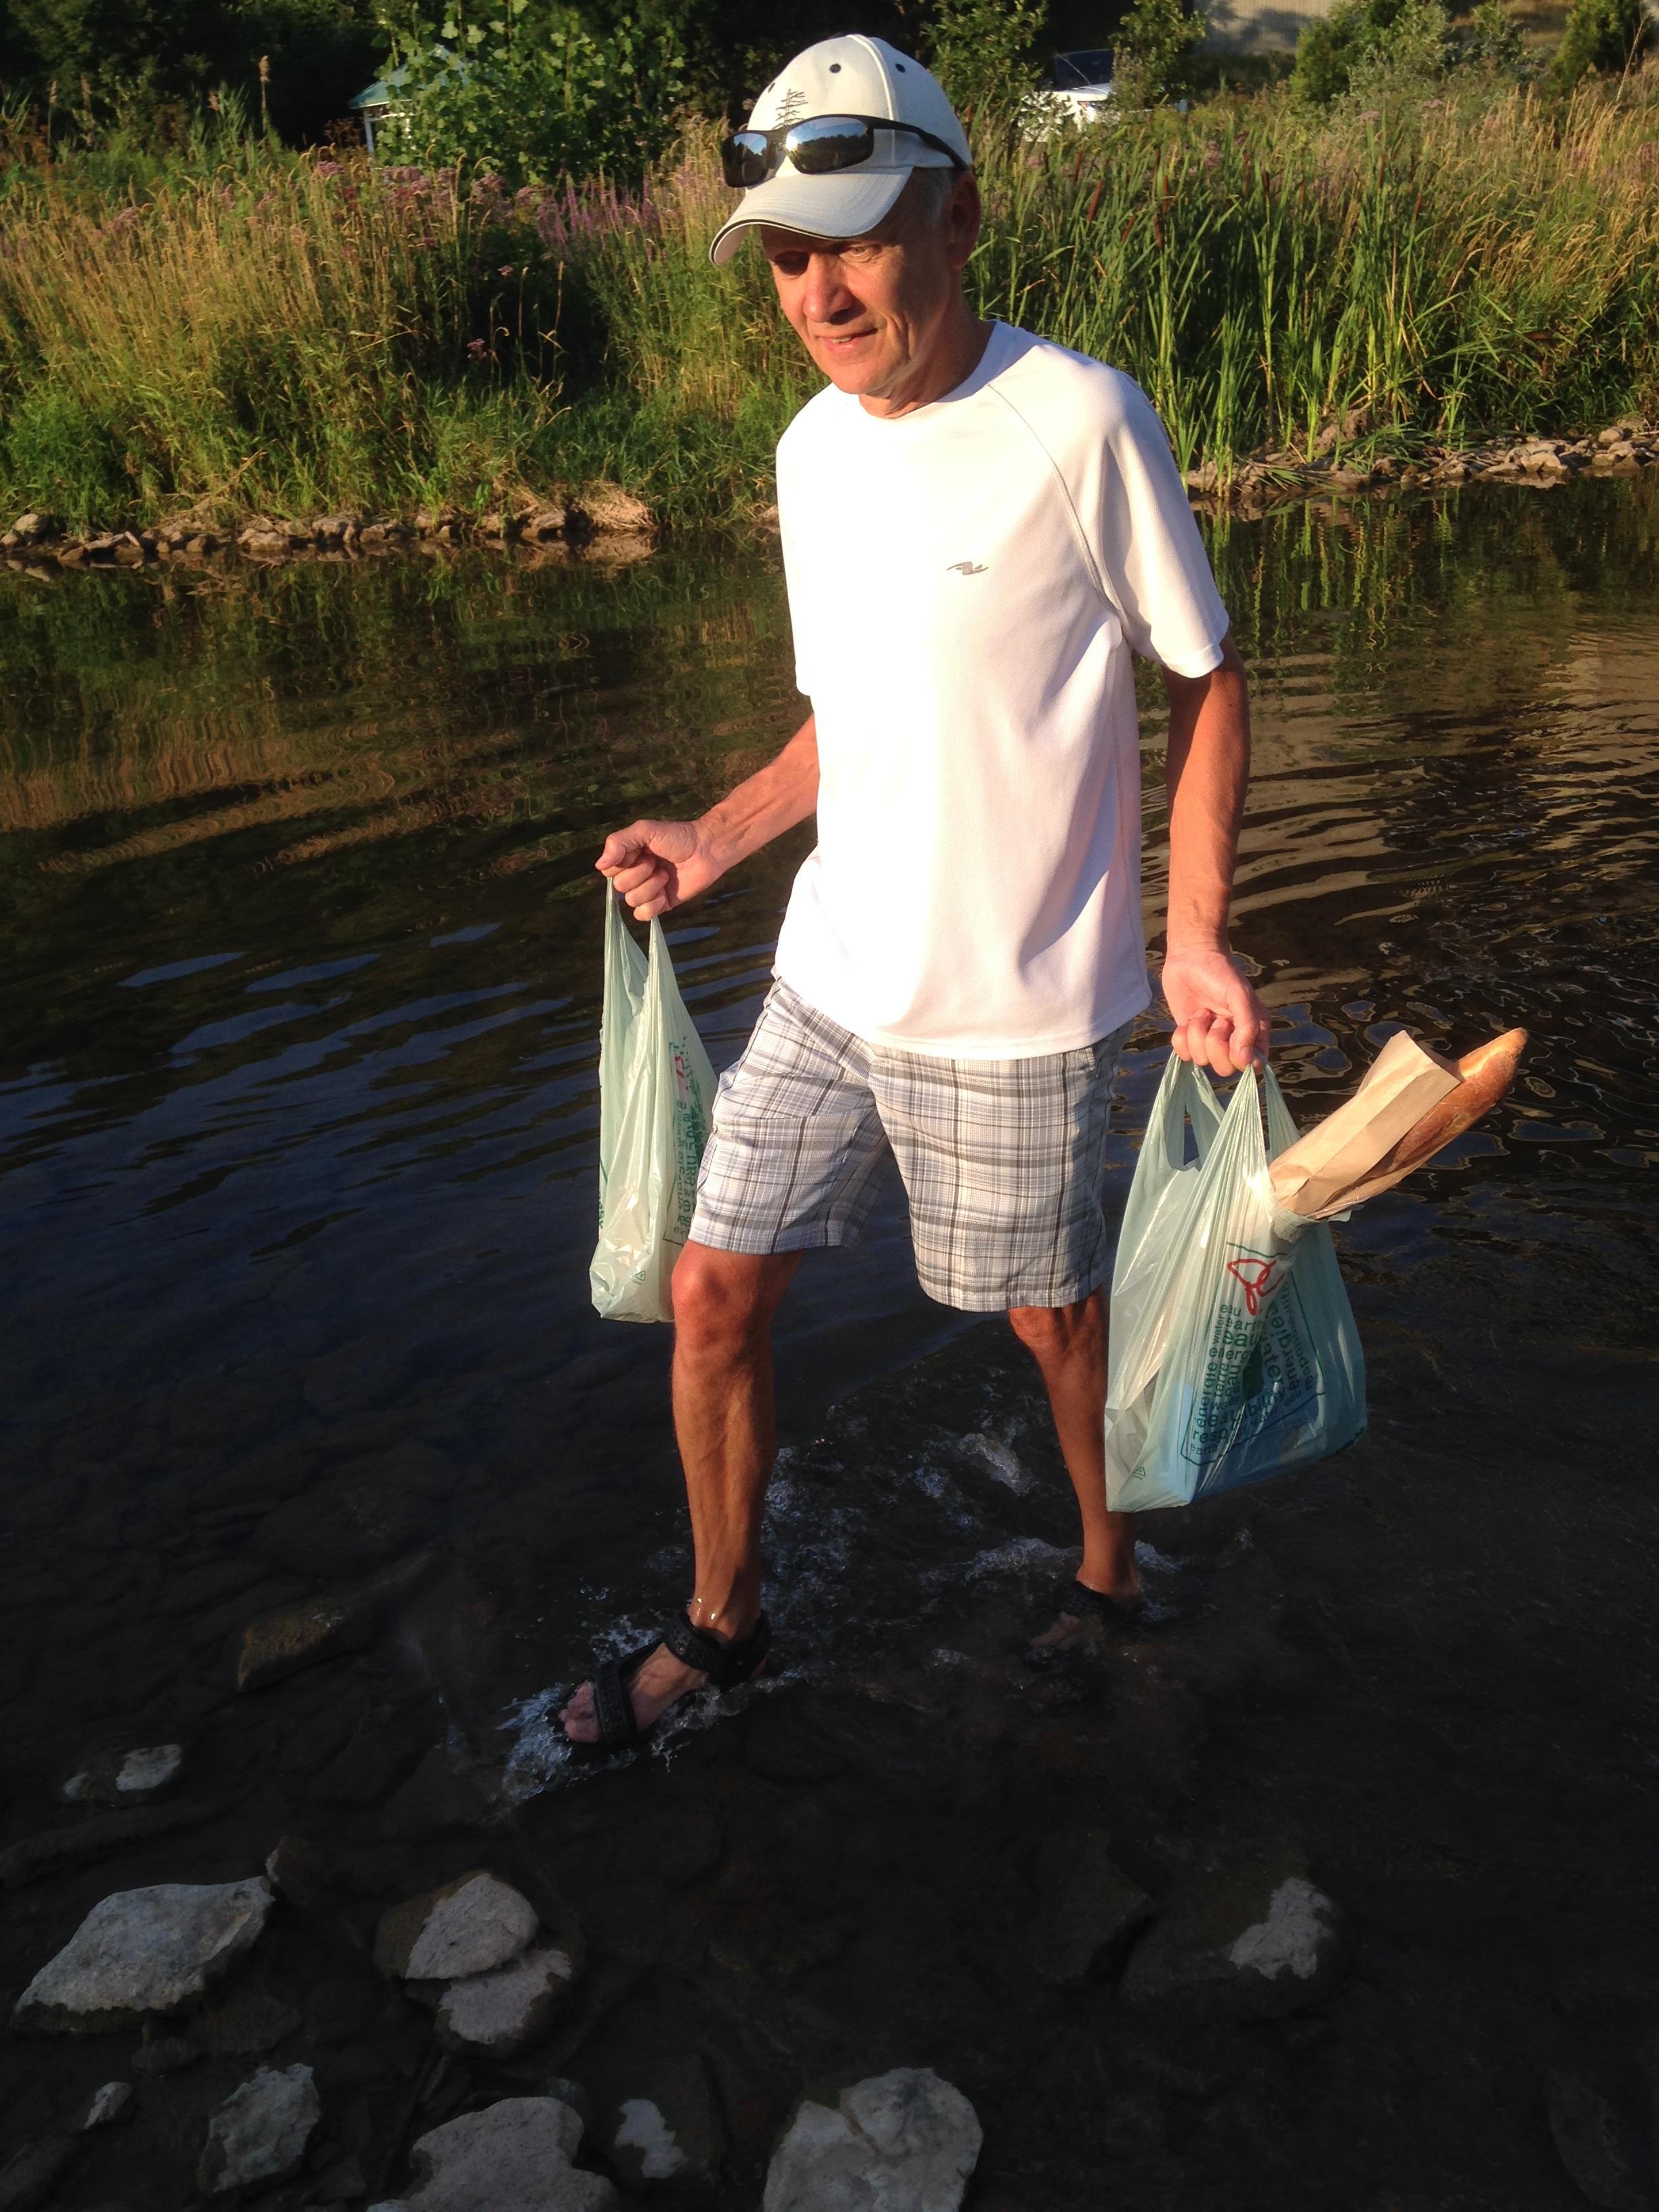 Bob in 16 Mile Creek with groceries in hand